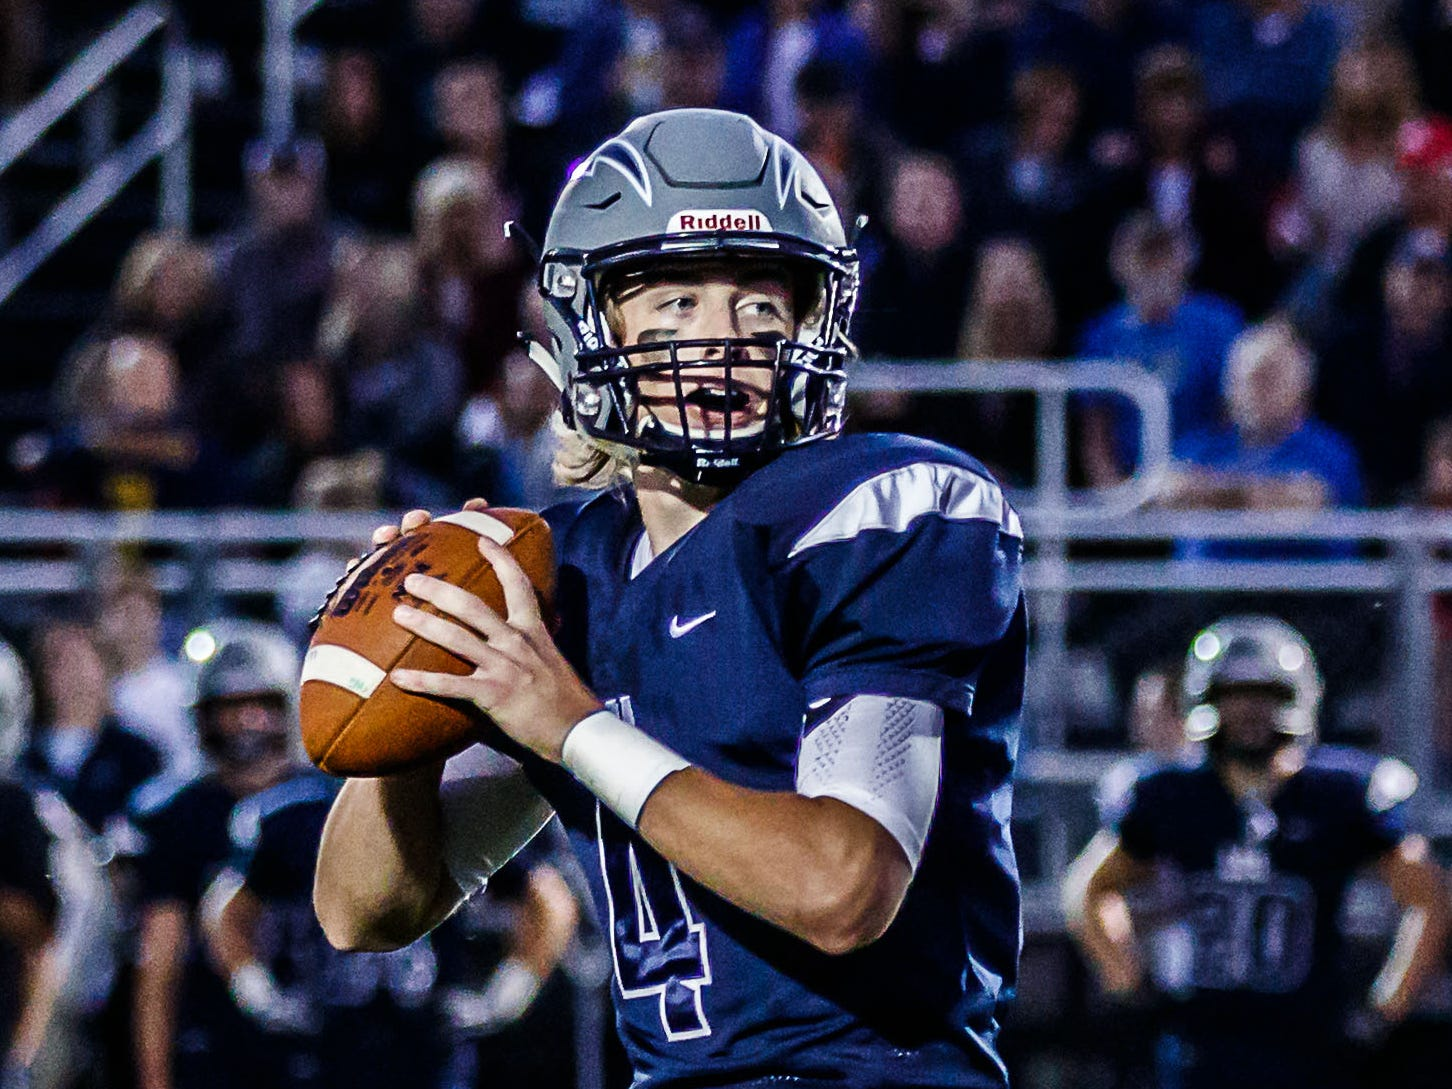 Lake Country Lutheran quarterback Ethan Wilkins (4) drops back to pass during the game at home against University School of Milwaukee on Thursday, Sept. 13, 2018.